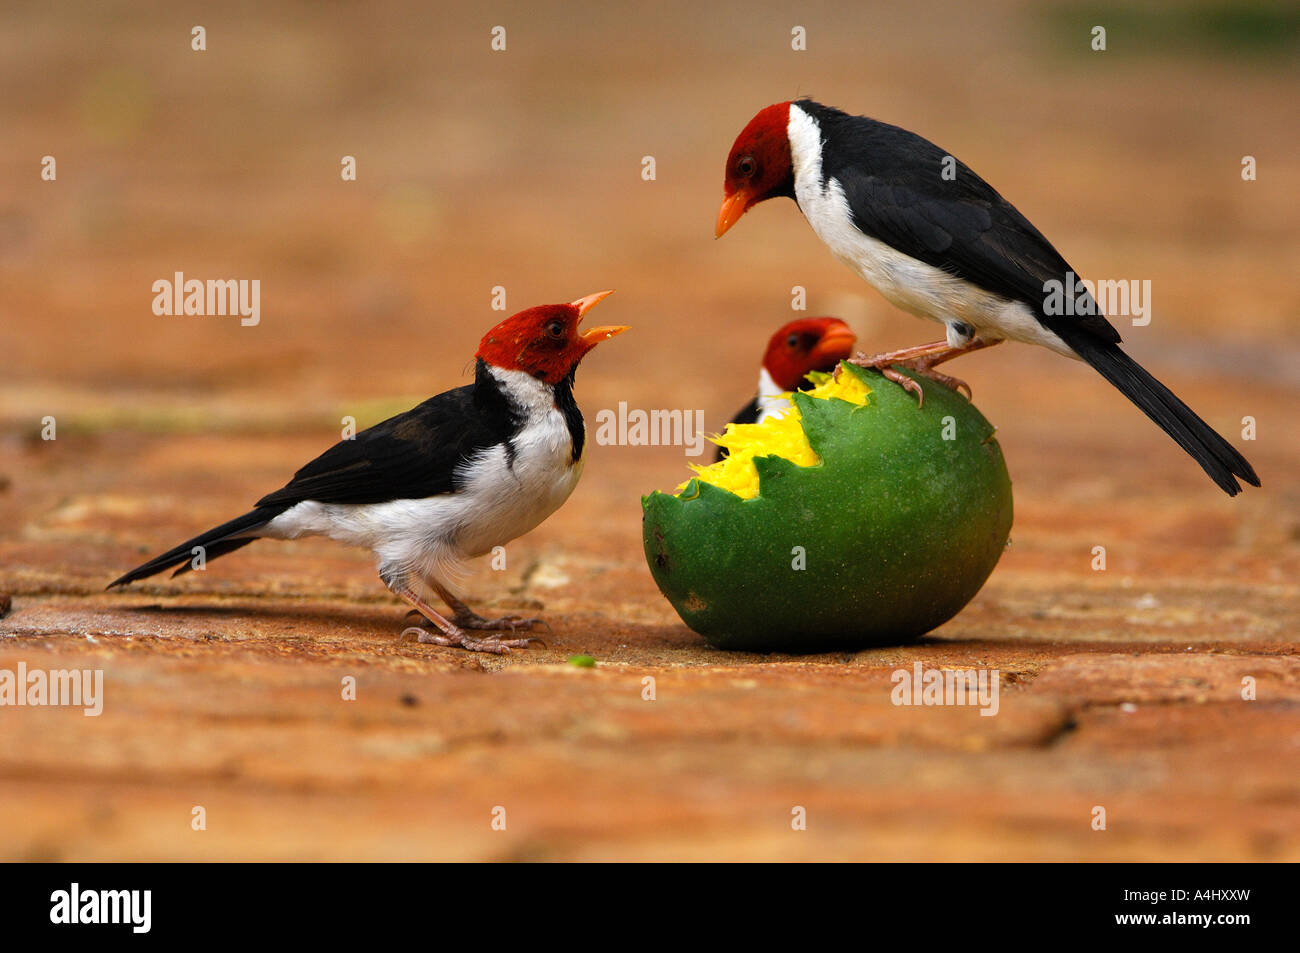 Red-capped Cardinal fighting on mango - Stock Image